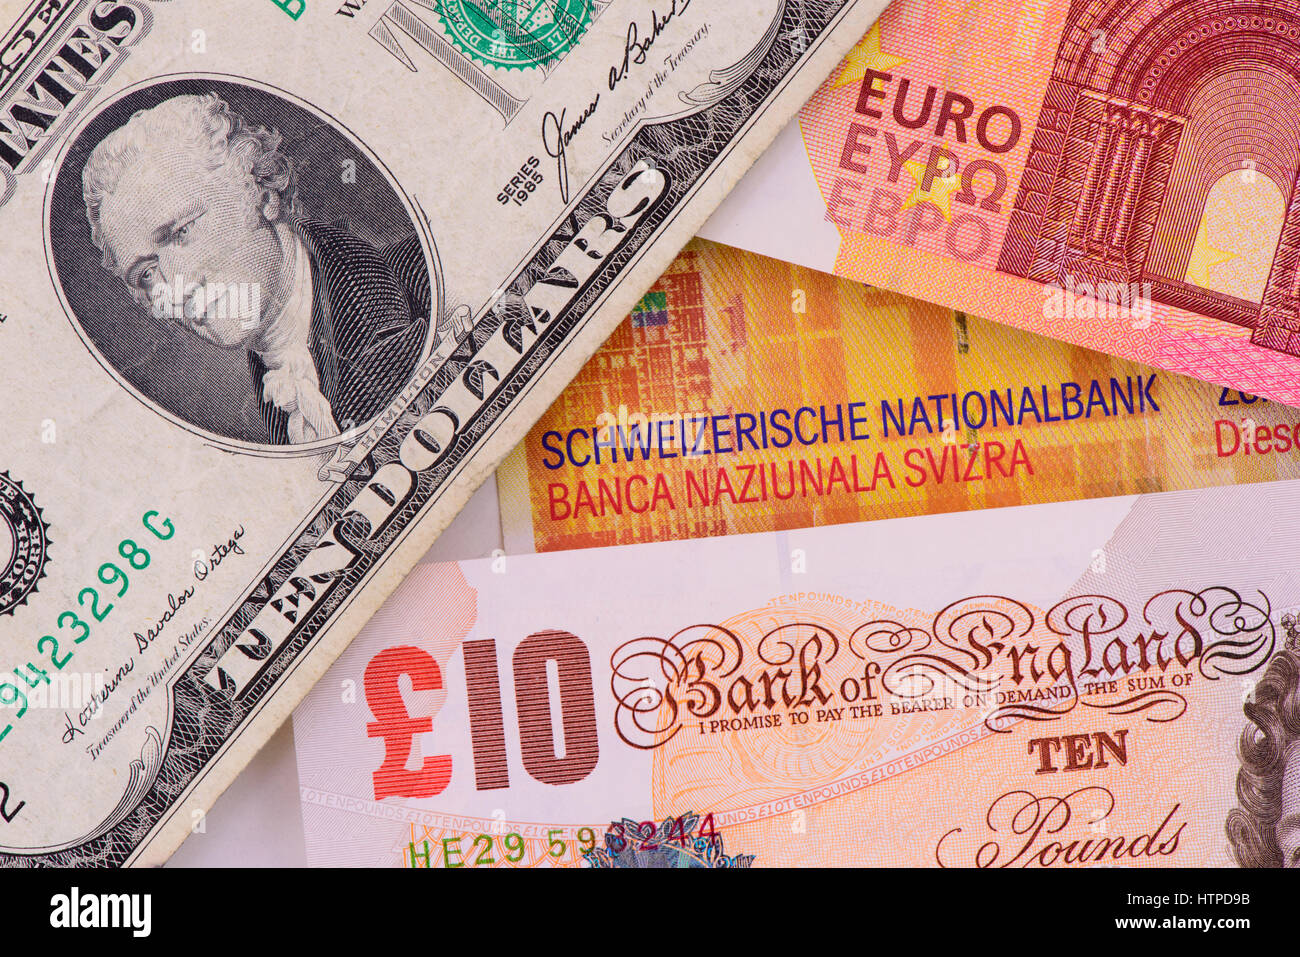 banknotes in different currencies - Stock Image